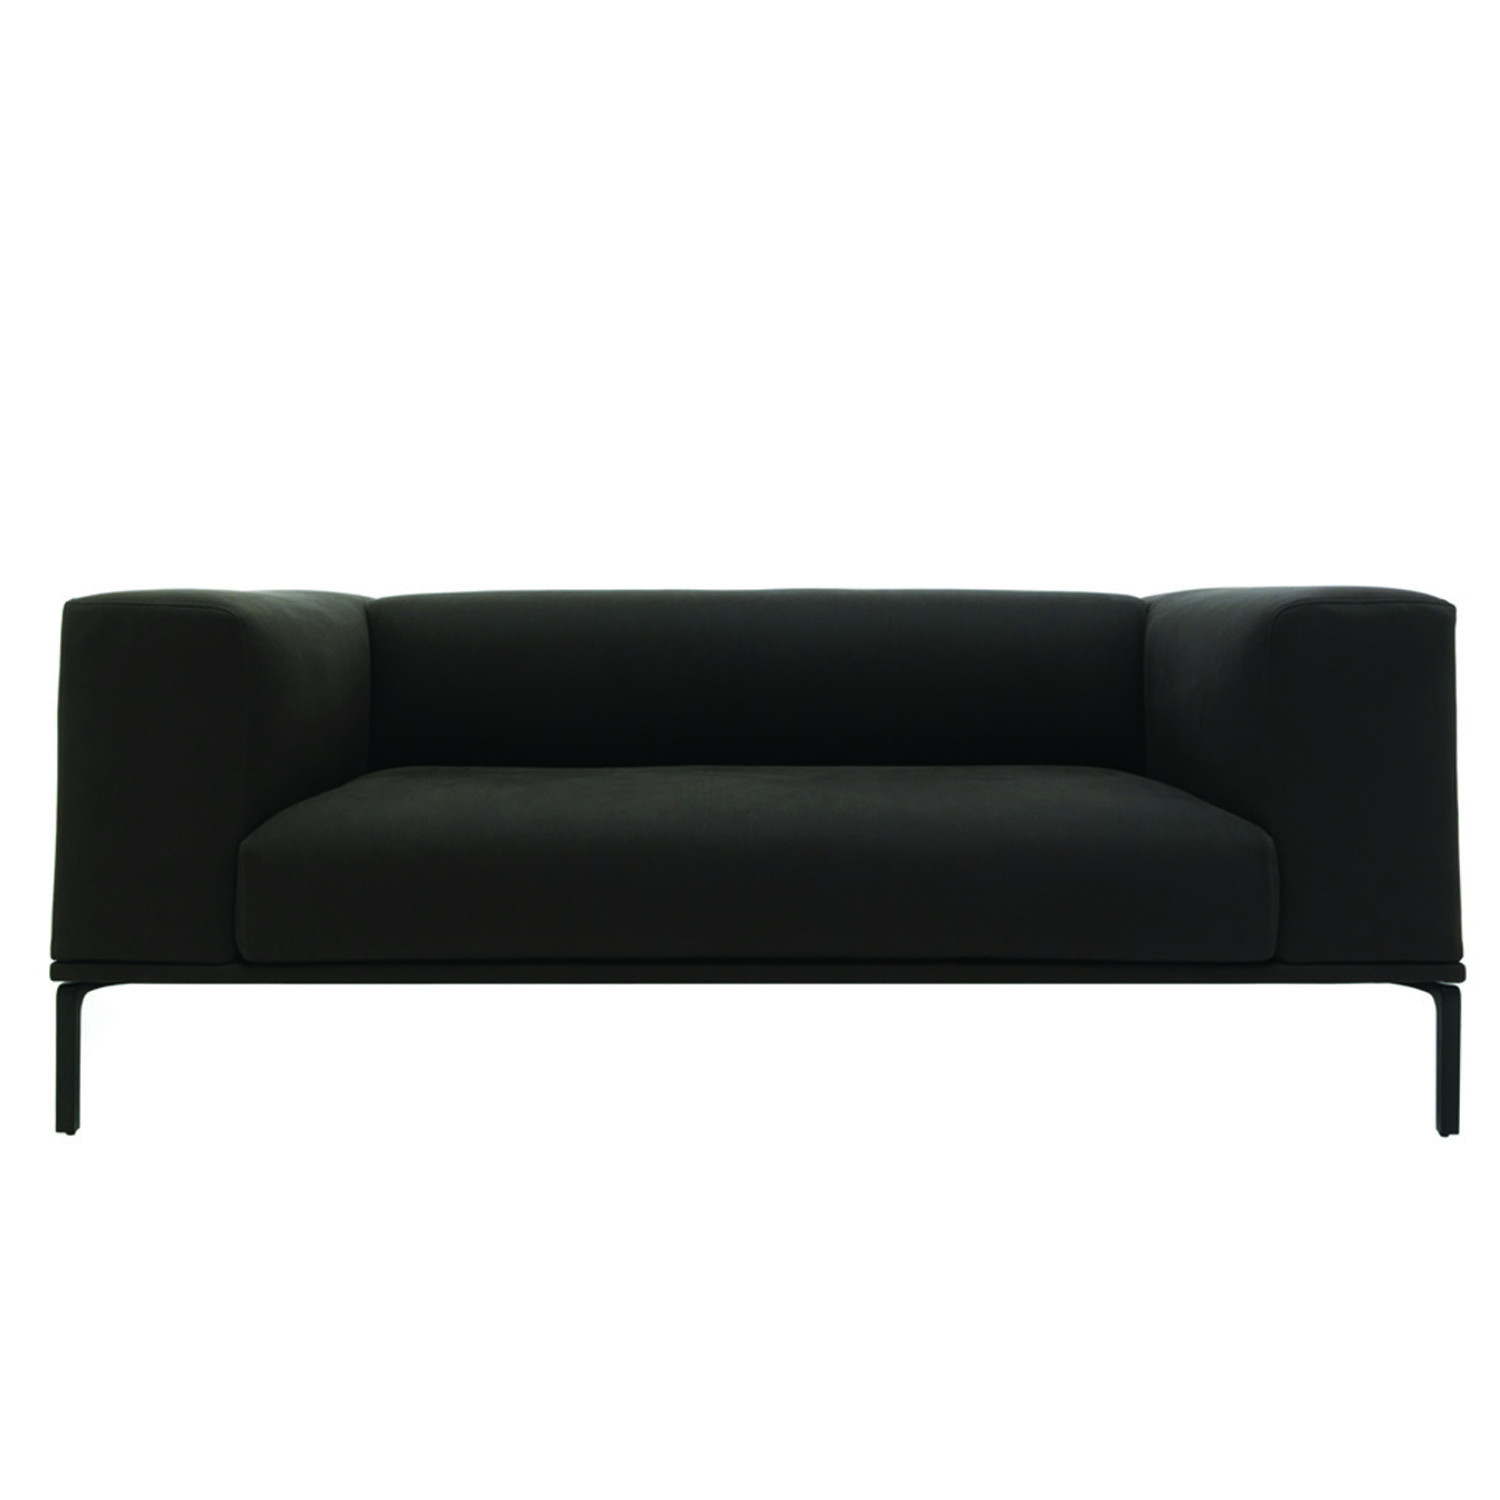 191 Moov Sofa Black Low Back